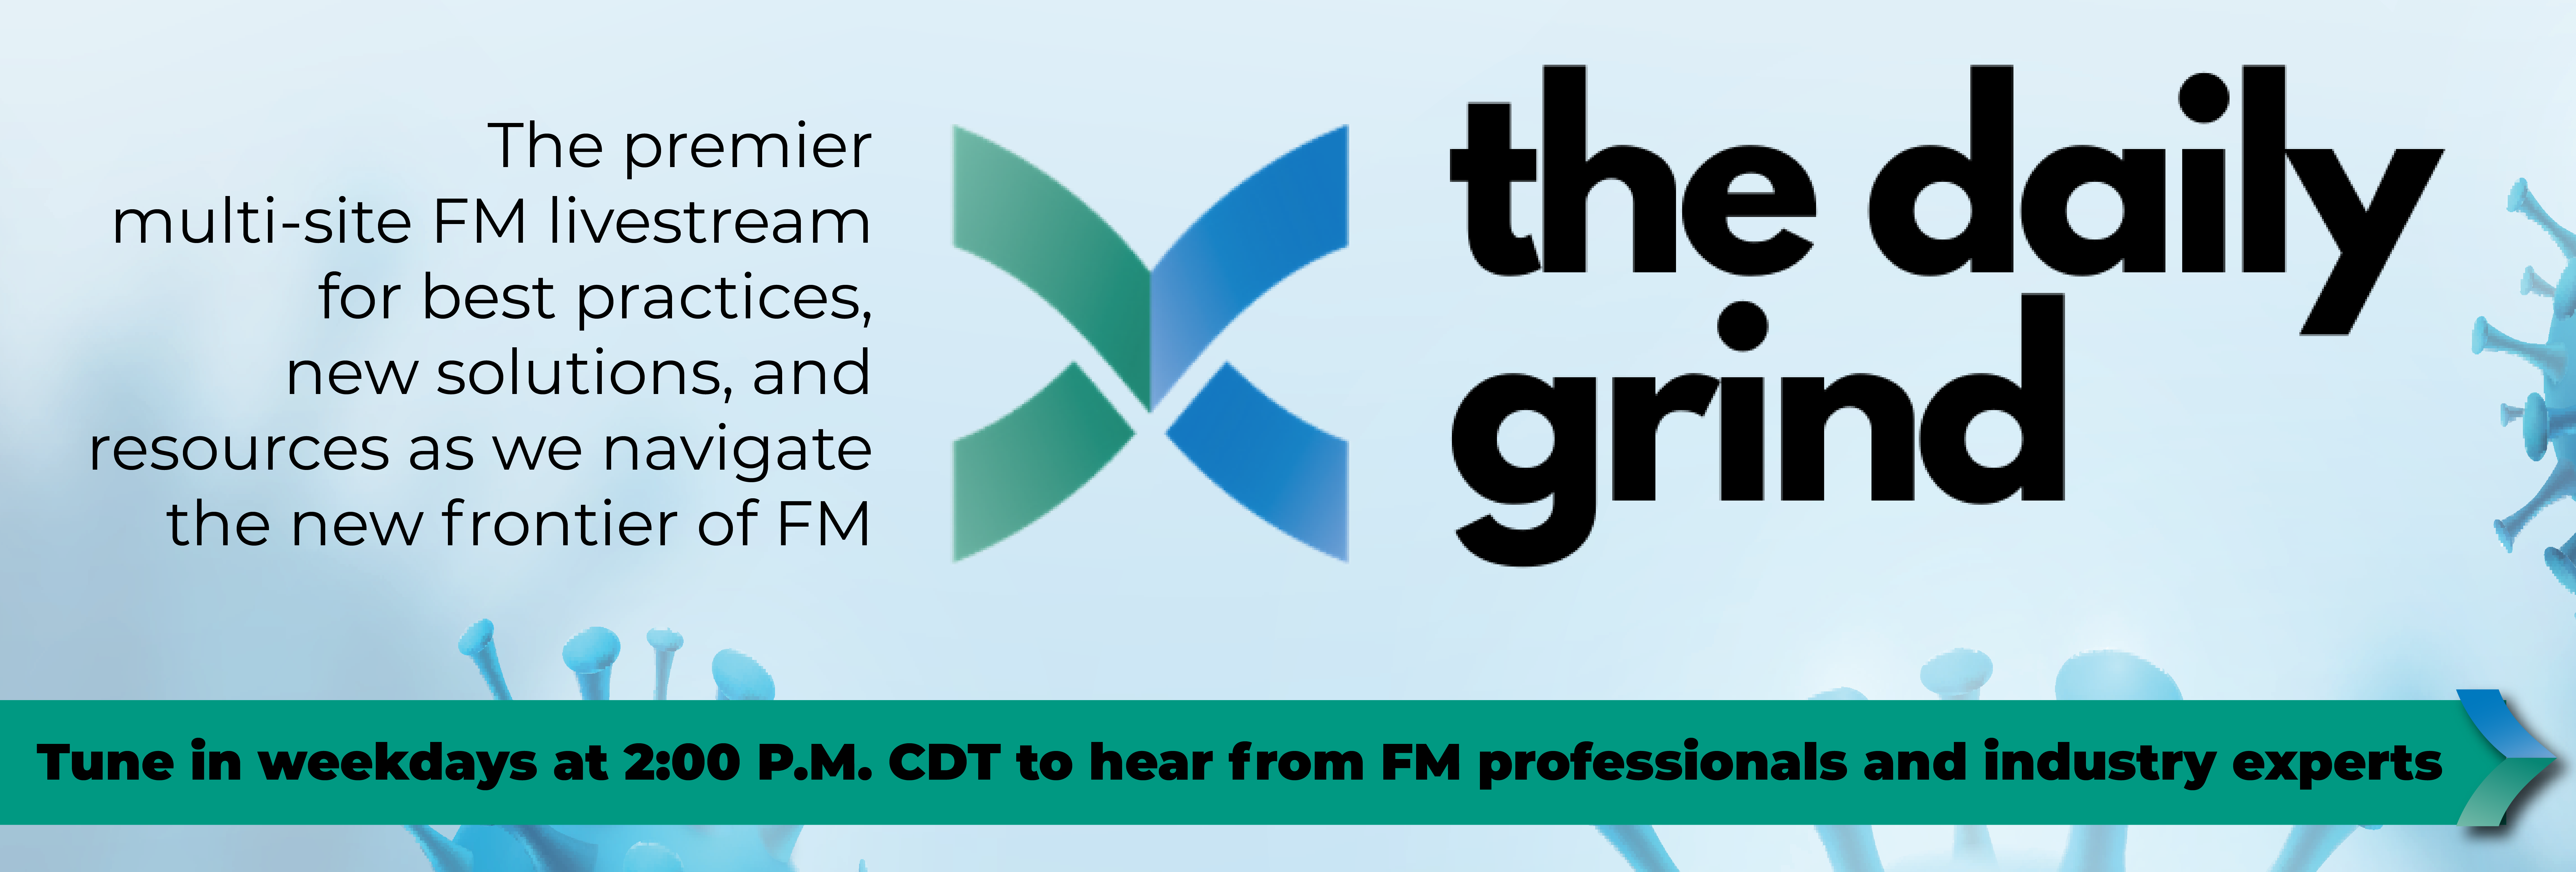 Connex FM Retail and Multi-Site Daily Grind Podcast